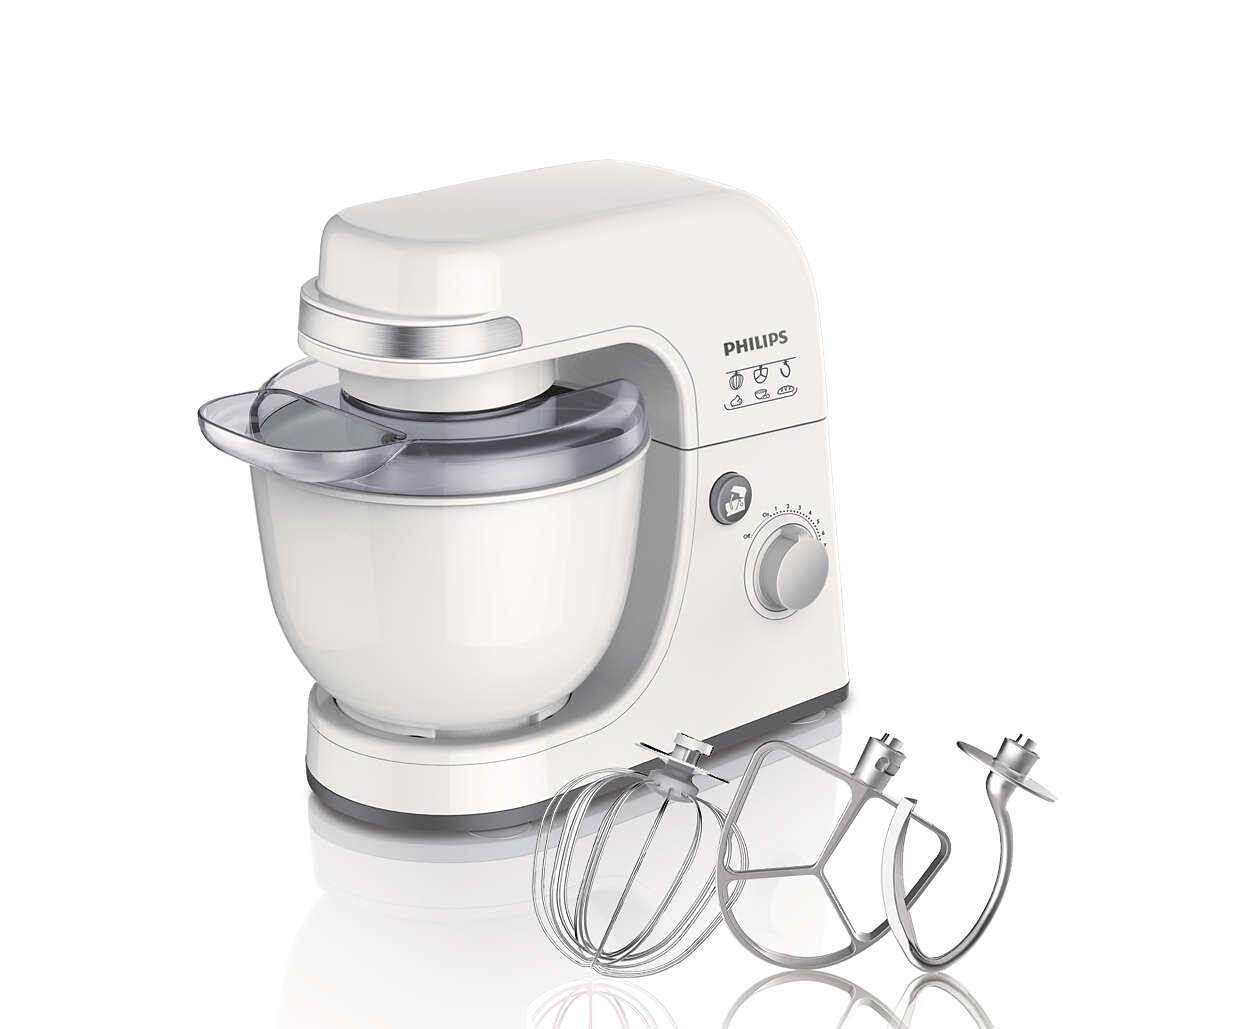 Philips Viva Collection Kitchen Machine (300W, 4L, White) HR7915/00 ( HR7915/00 )